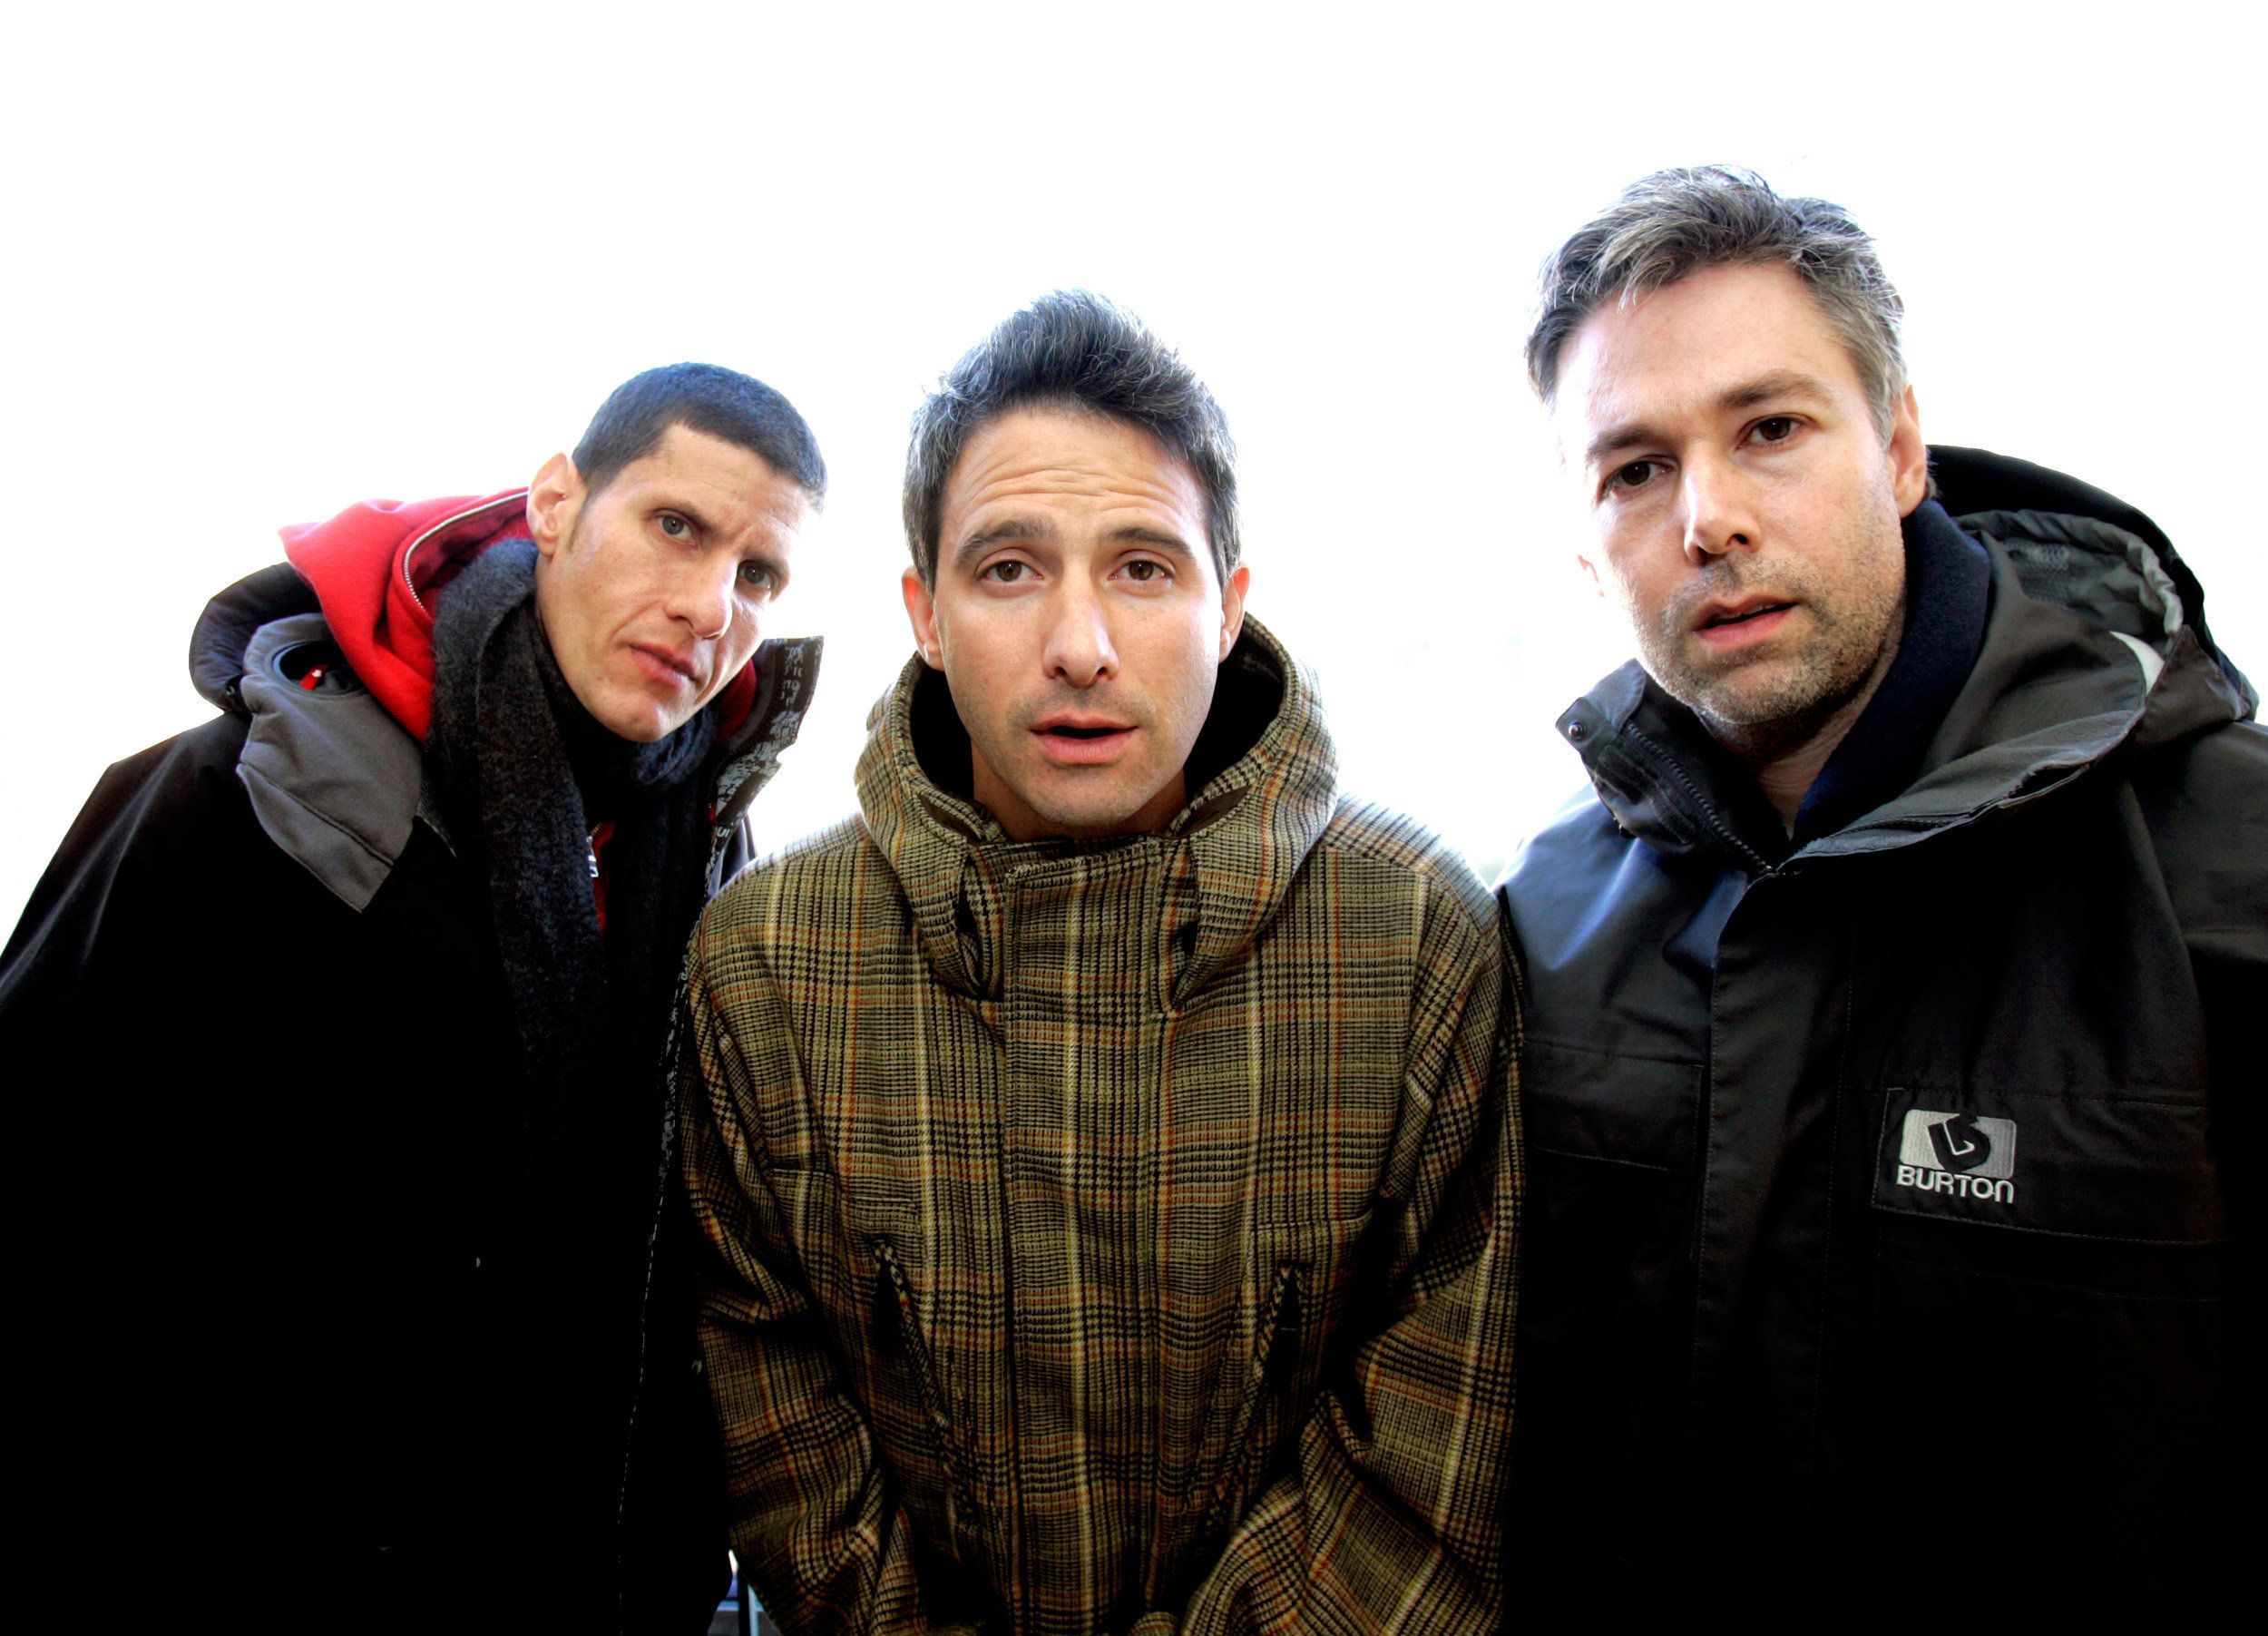 """The Beastie Boys (L-R) Mike Diamond, Adam Horowitz and Adam Yauch are photographed at the 2006 Sundance film festival in Park City, Utah, January 22, 2006. The Beastie Boys' documentary film """"Awesome: I Fuckin' Shot That"""" is screening at the festival. REUTERS/Mario Anzuoni"""